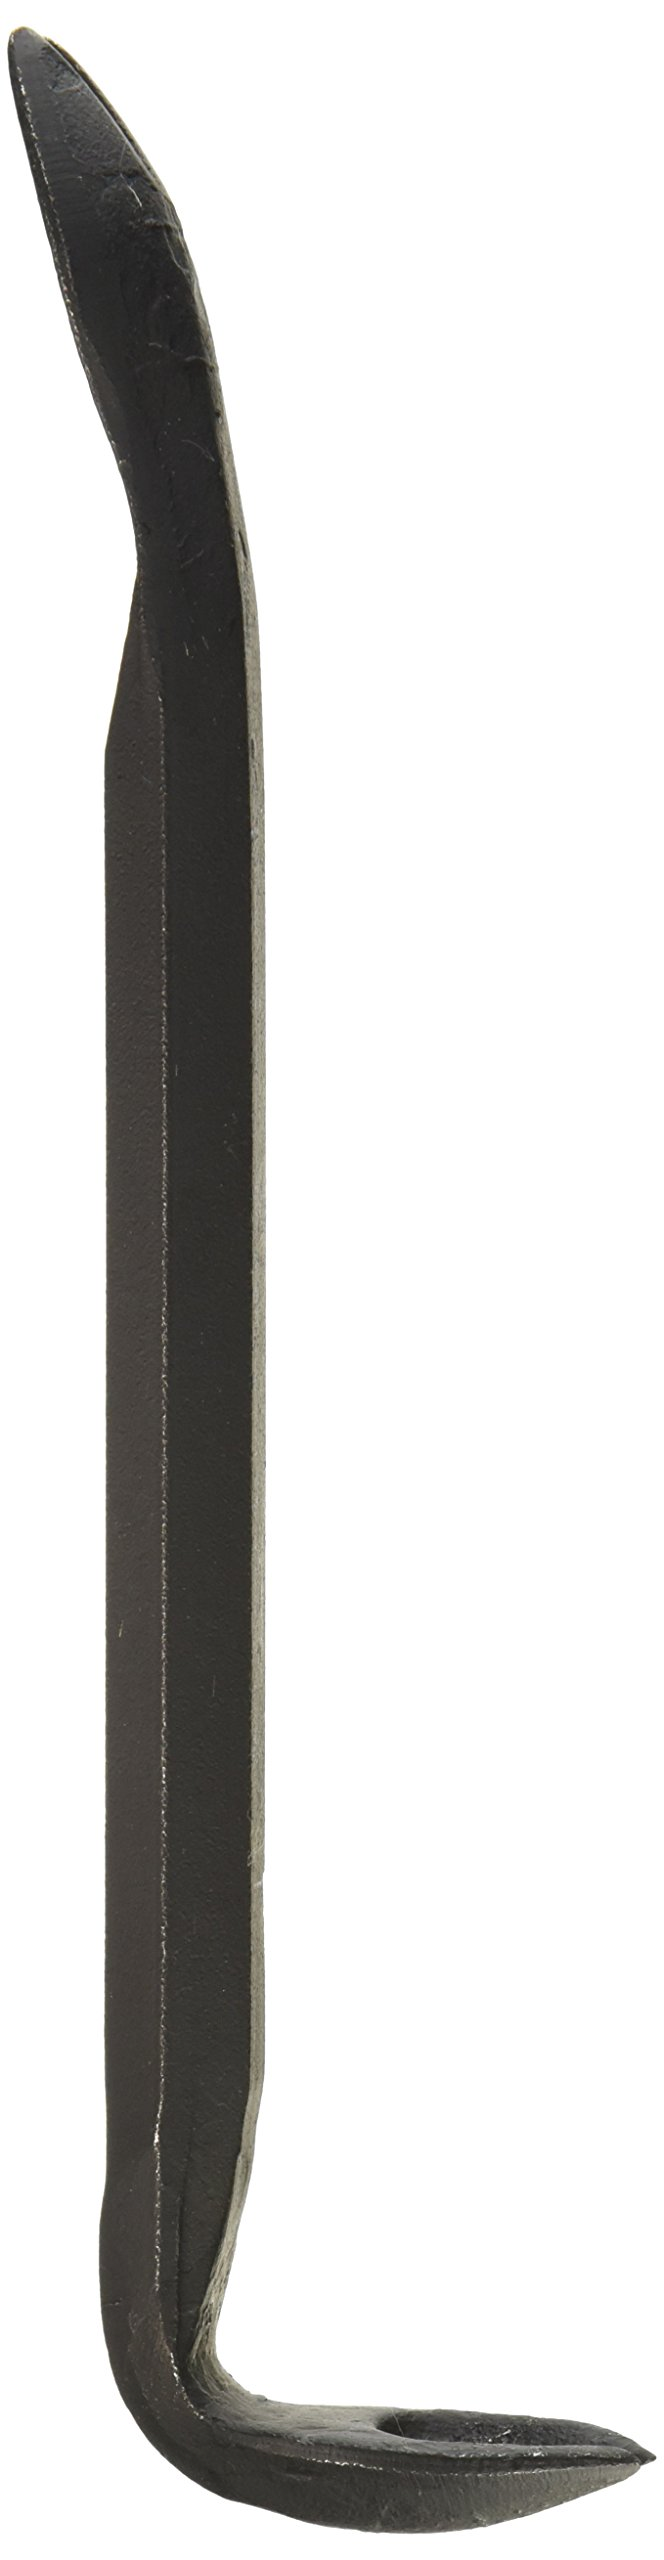 Mayhew Select 41101 725 Cats Paw 10-Inch Double Nail Puller by Mayhew Tools